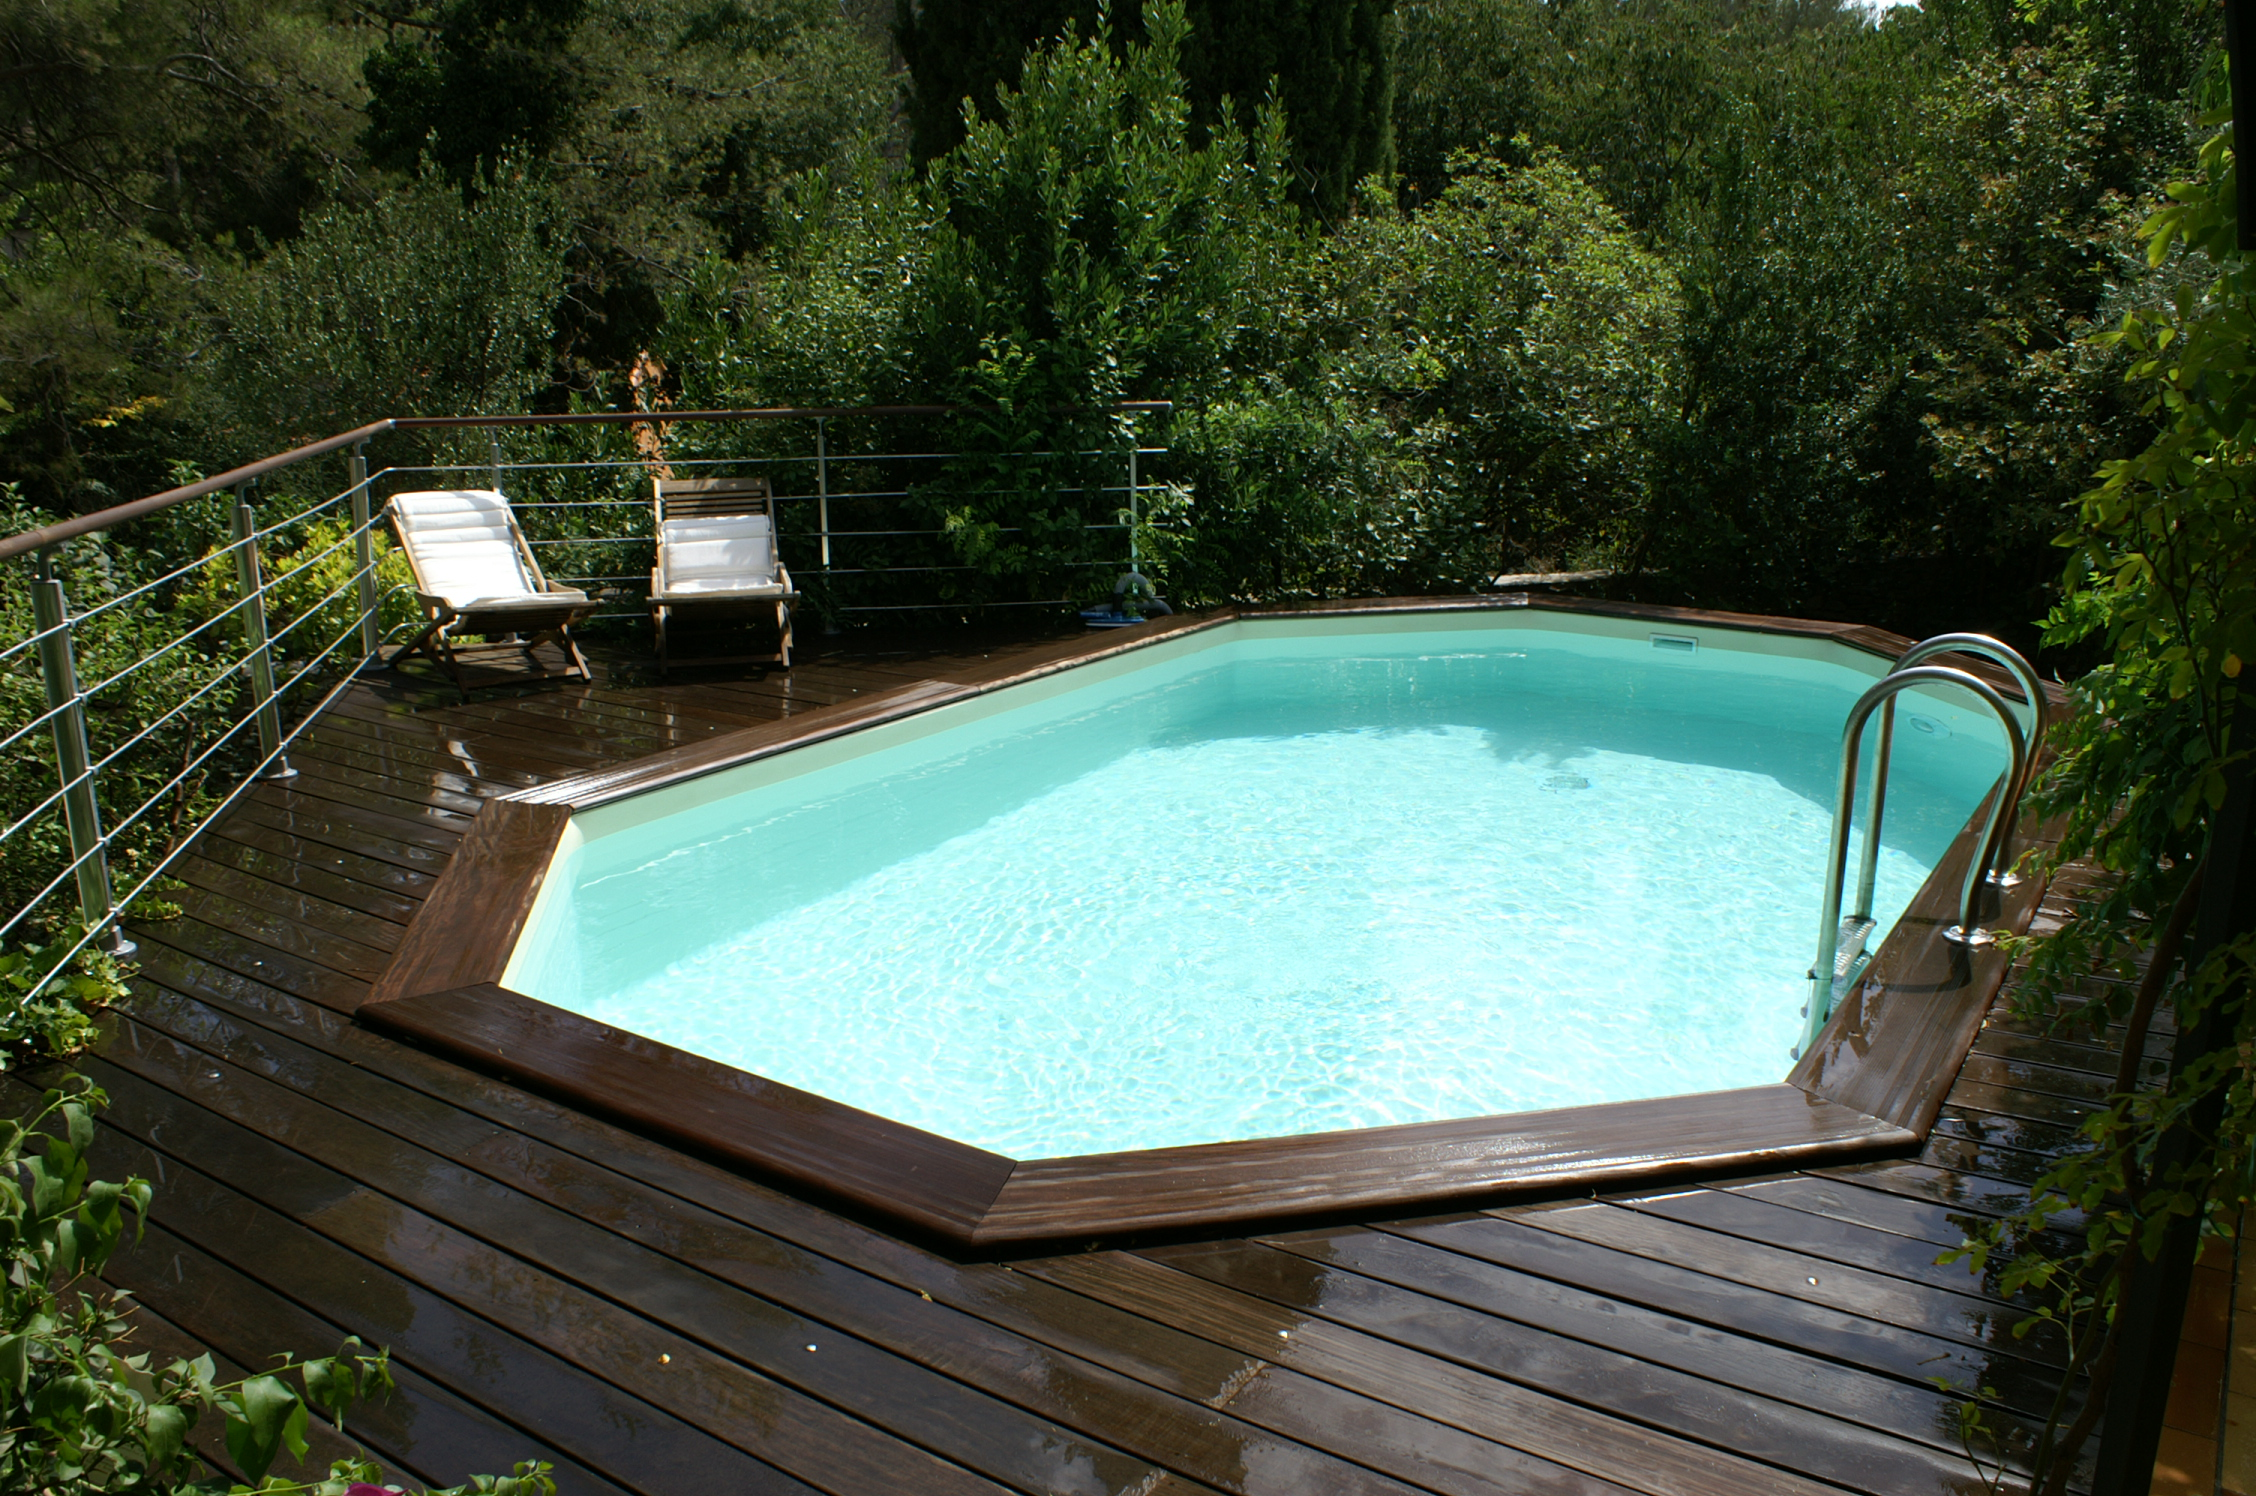 Kit piscine hors sol bois for Construction piscine